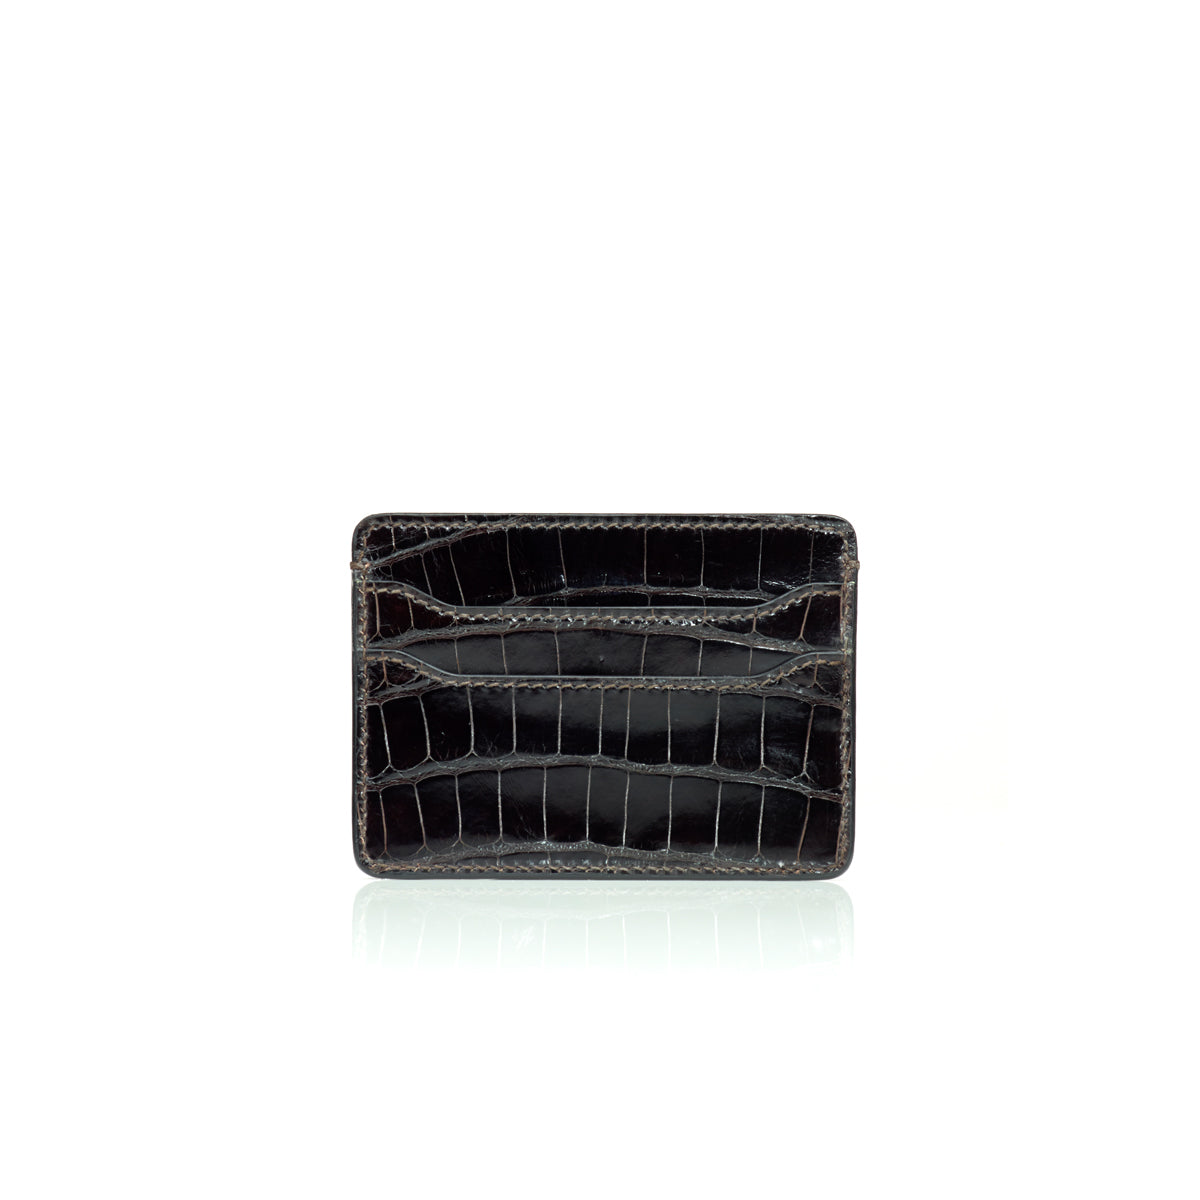 Credit Card Case - Black Alligator